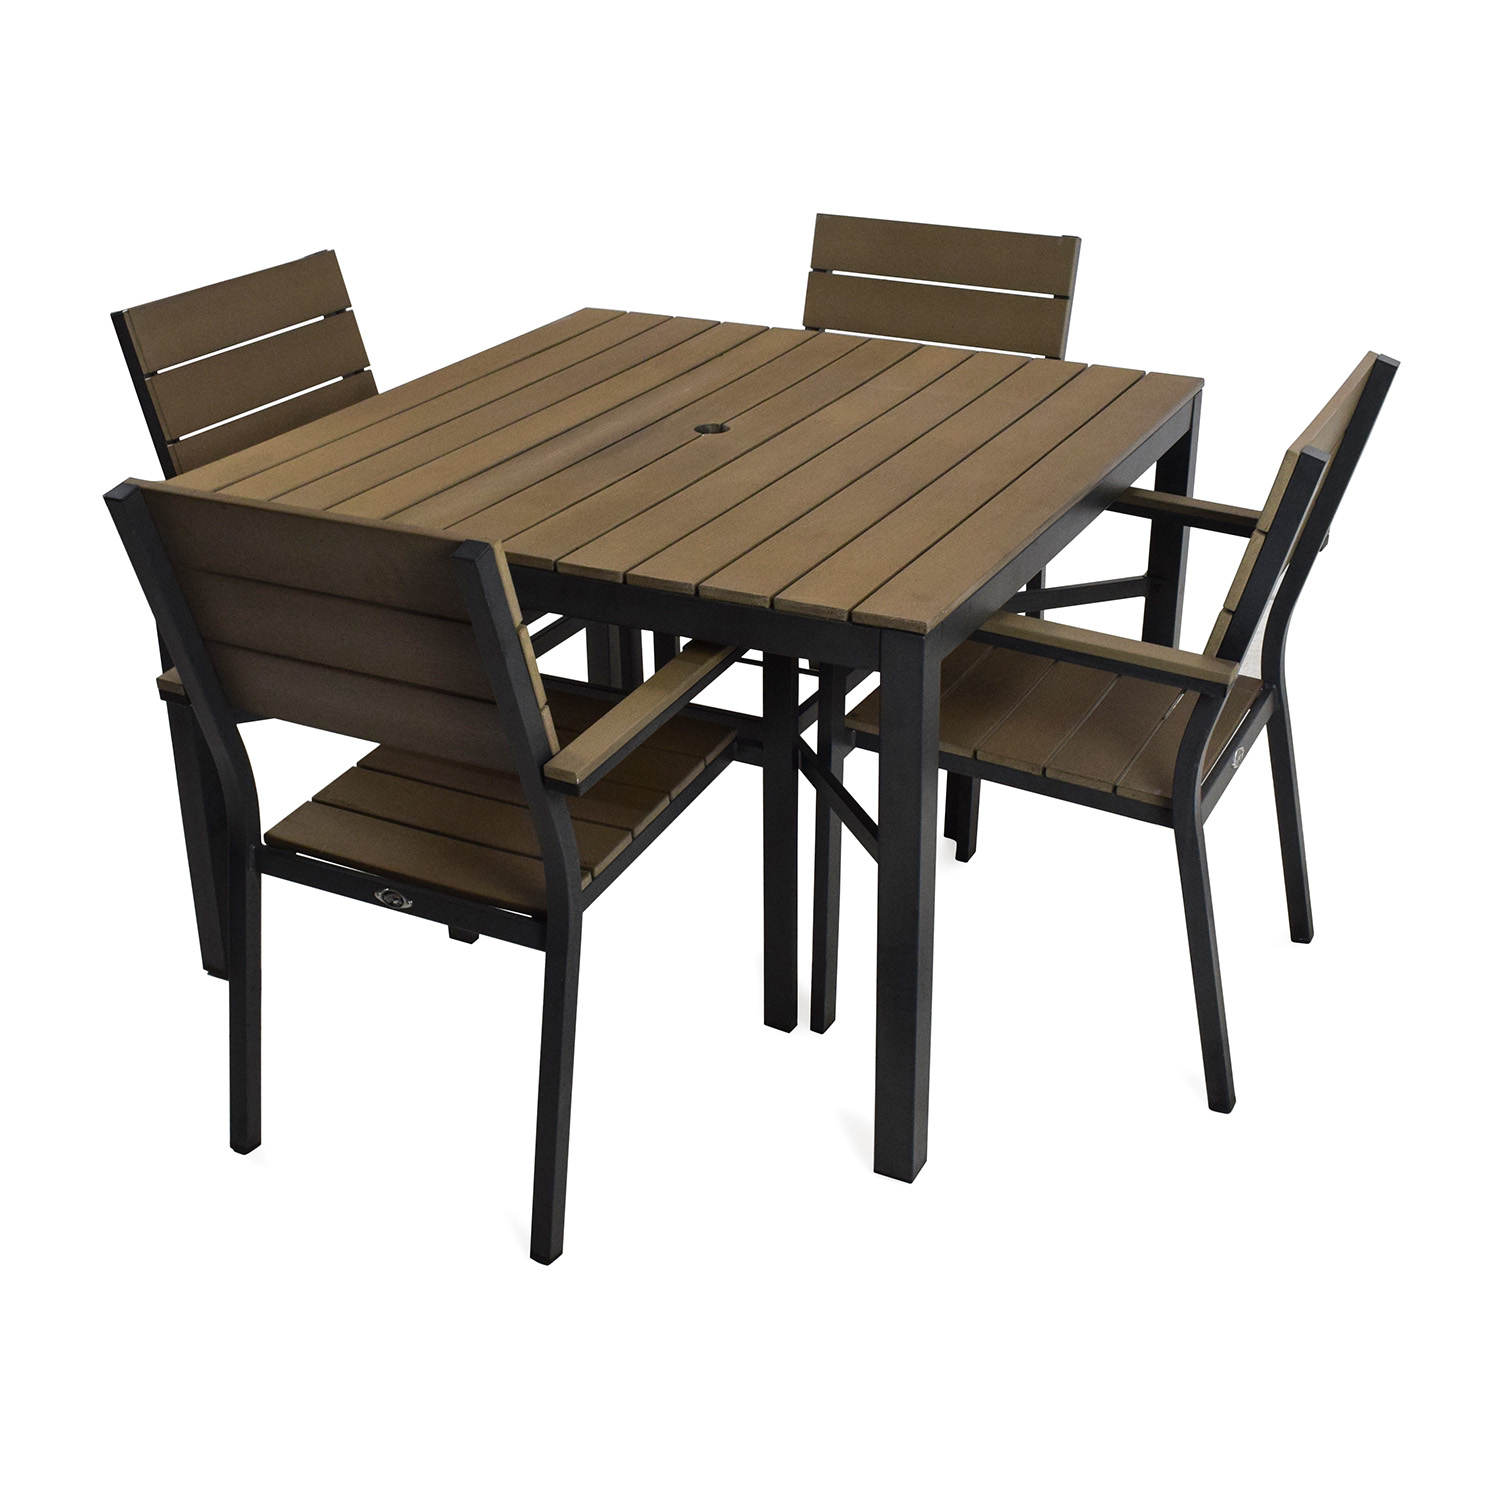 53 OFF Home Depot Hampton Bay Northridge 5Piece Patio Dining Set